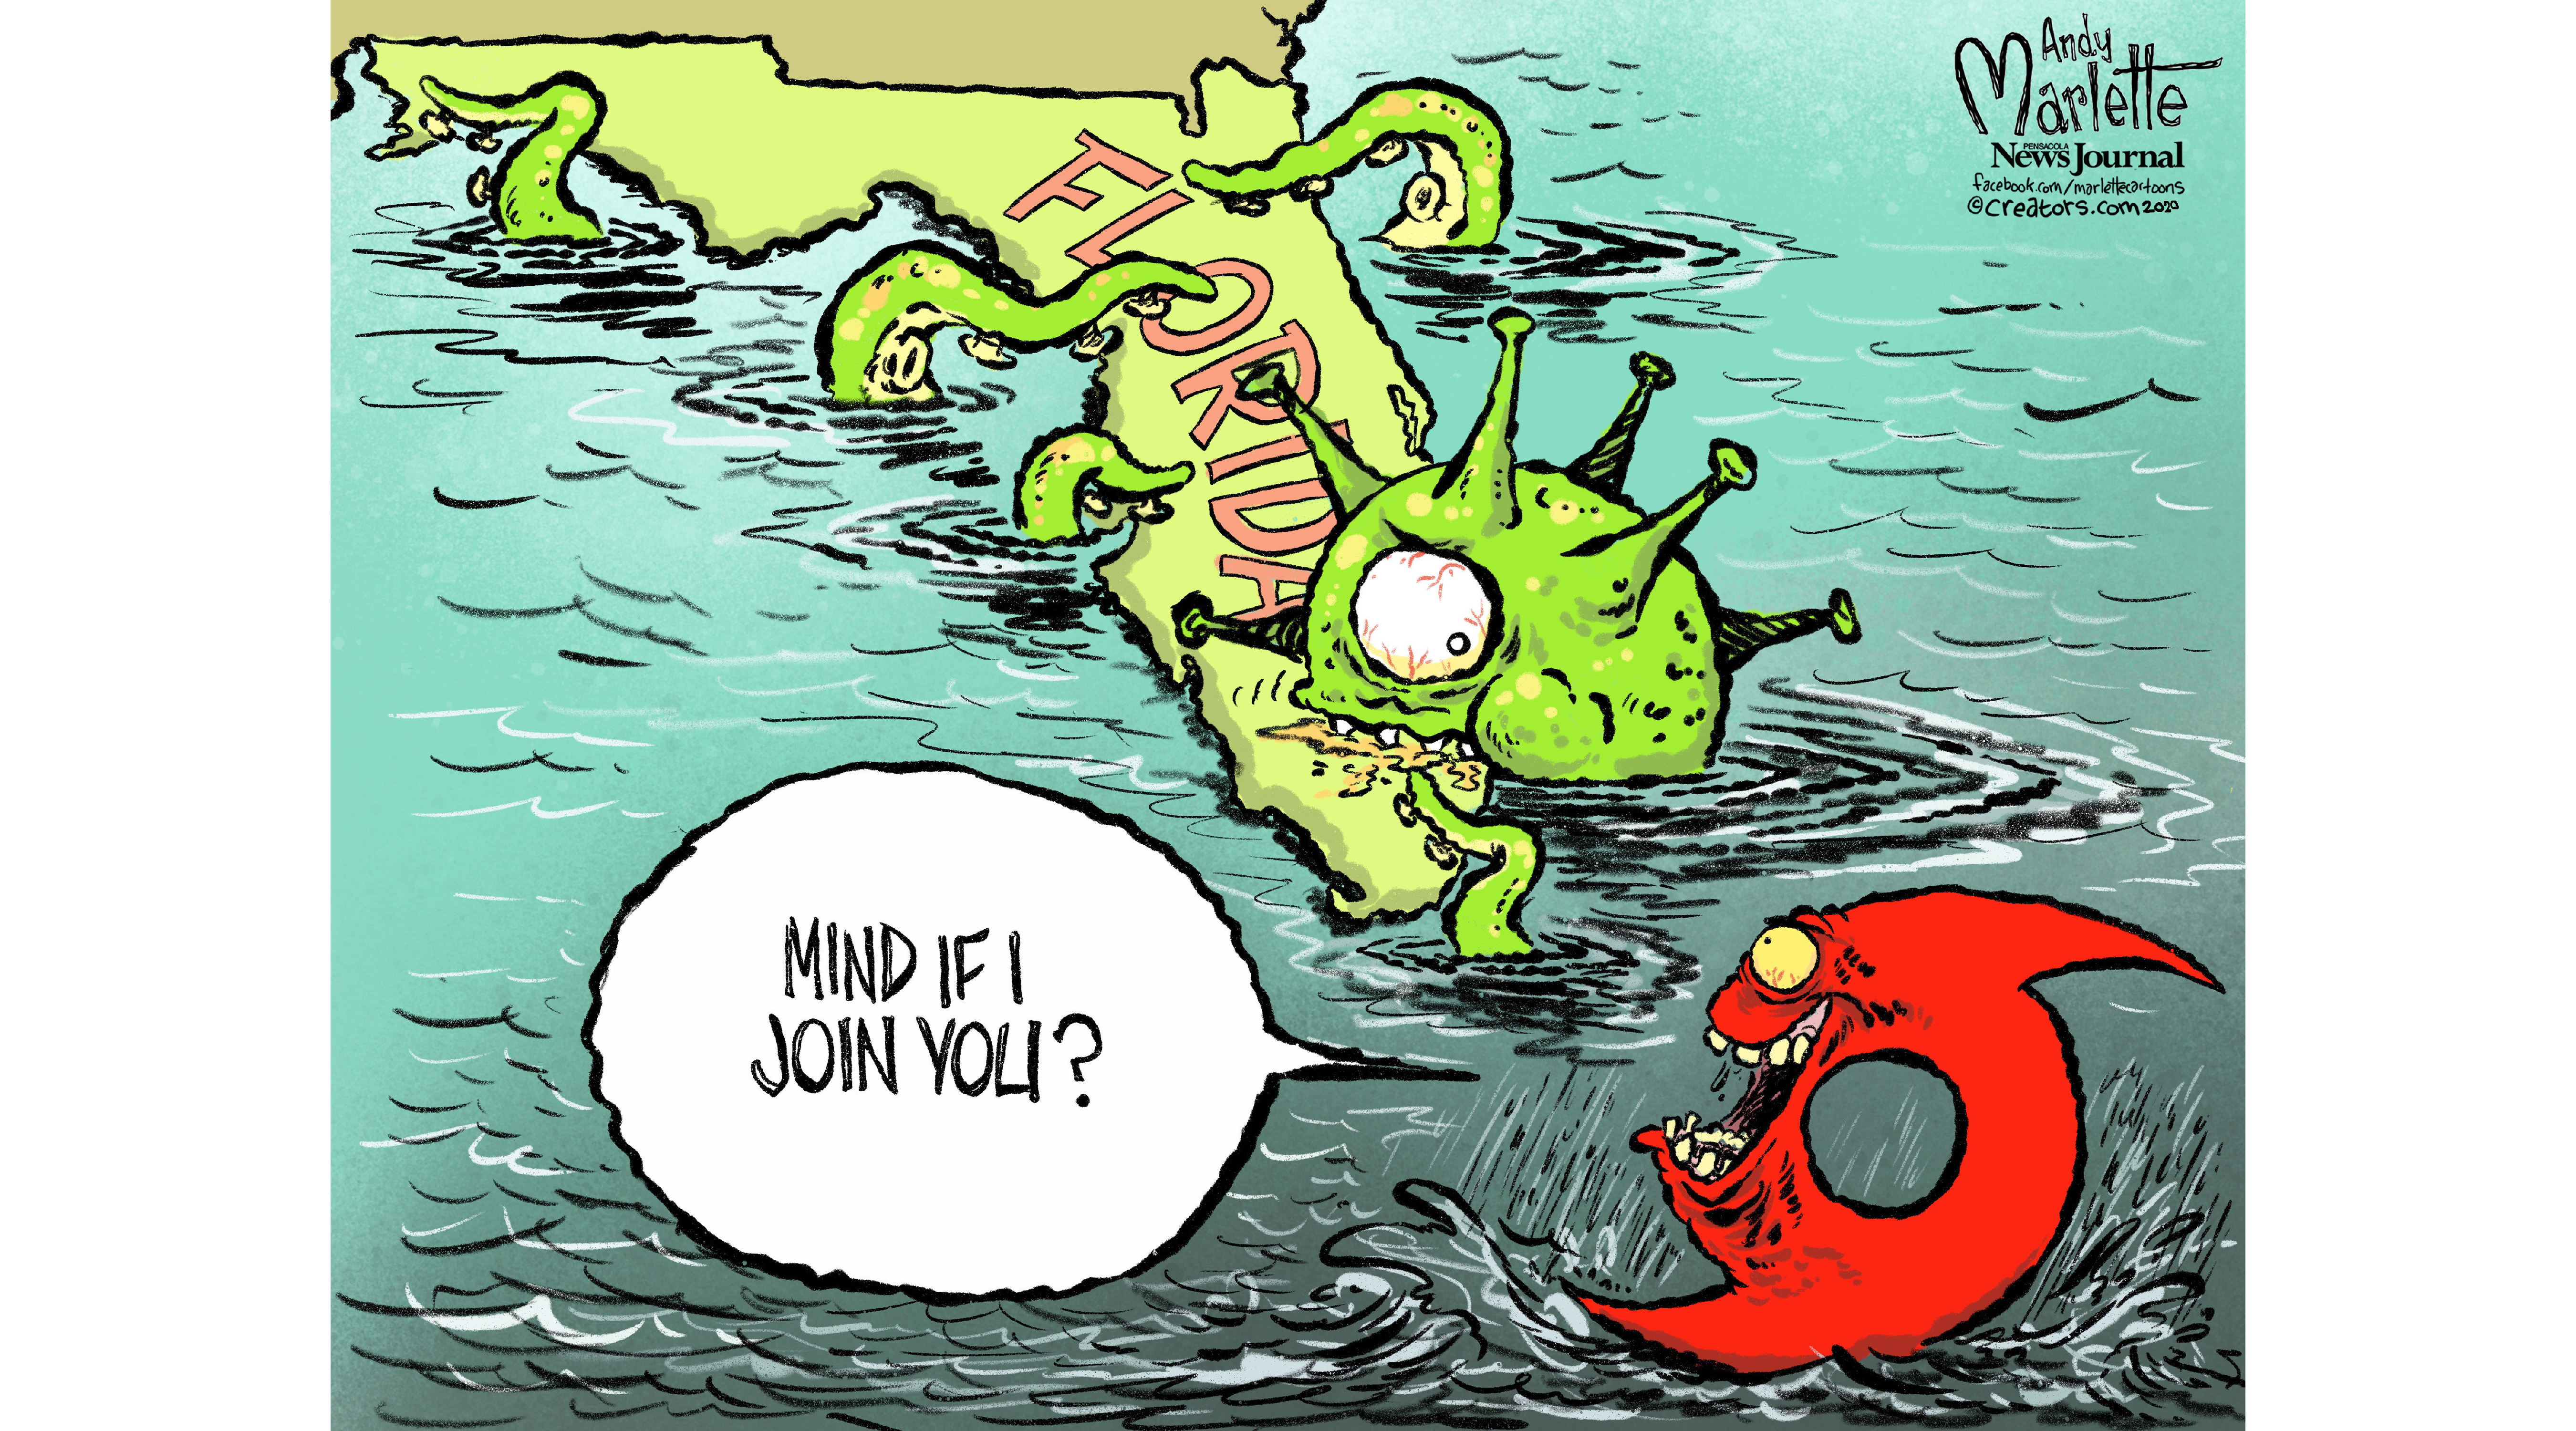 [Andy Marlette -- Pensacola News Journal]